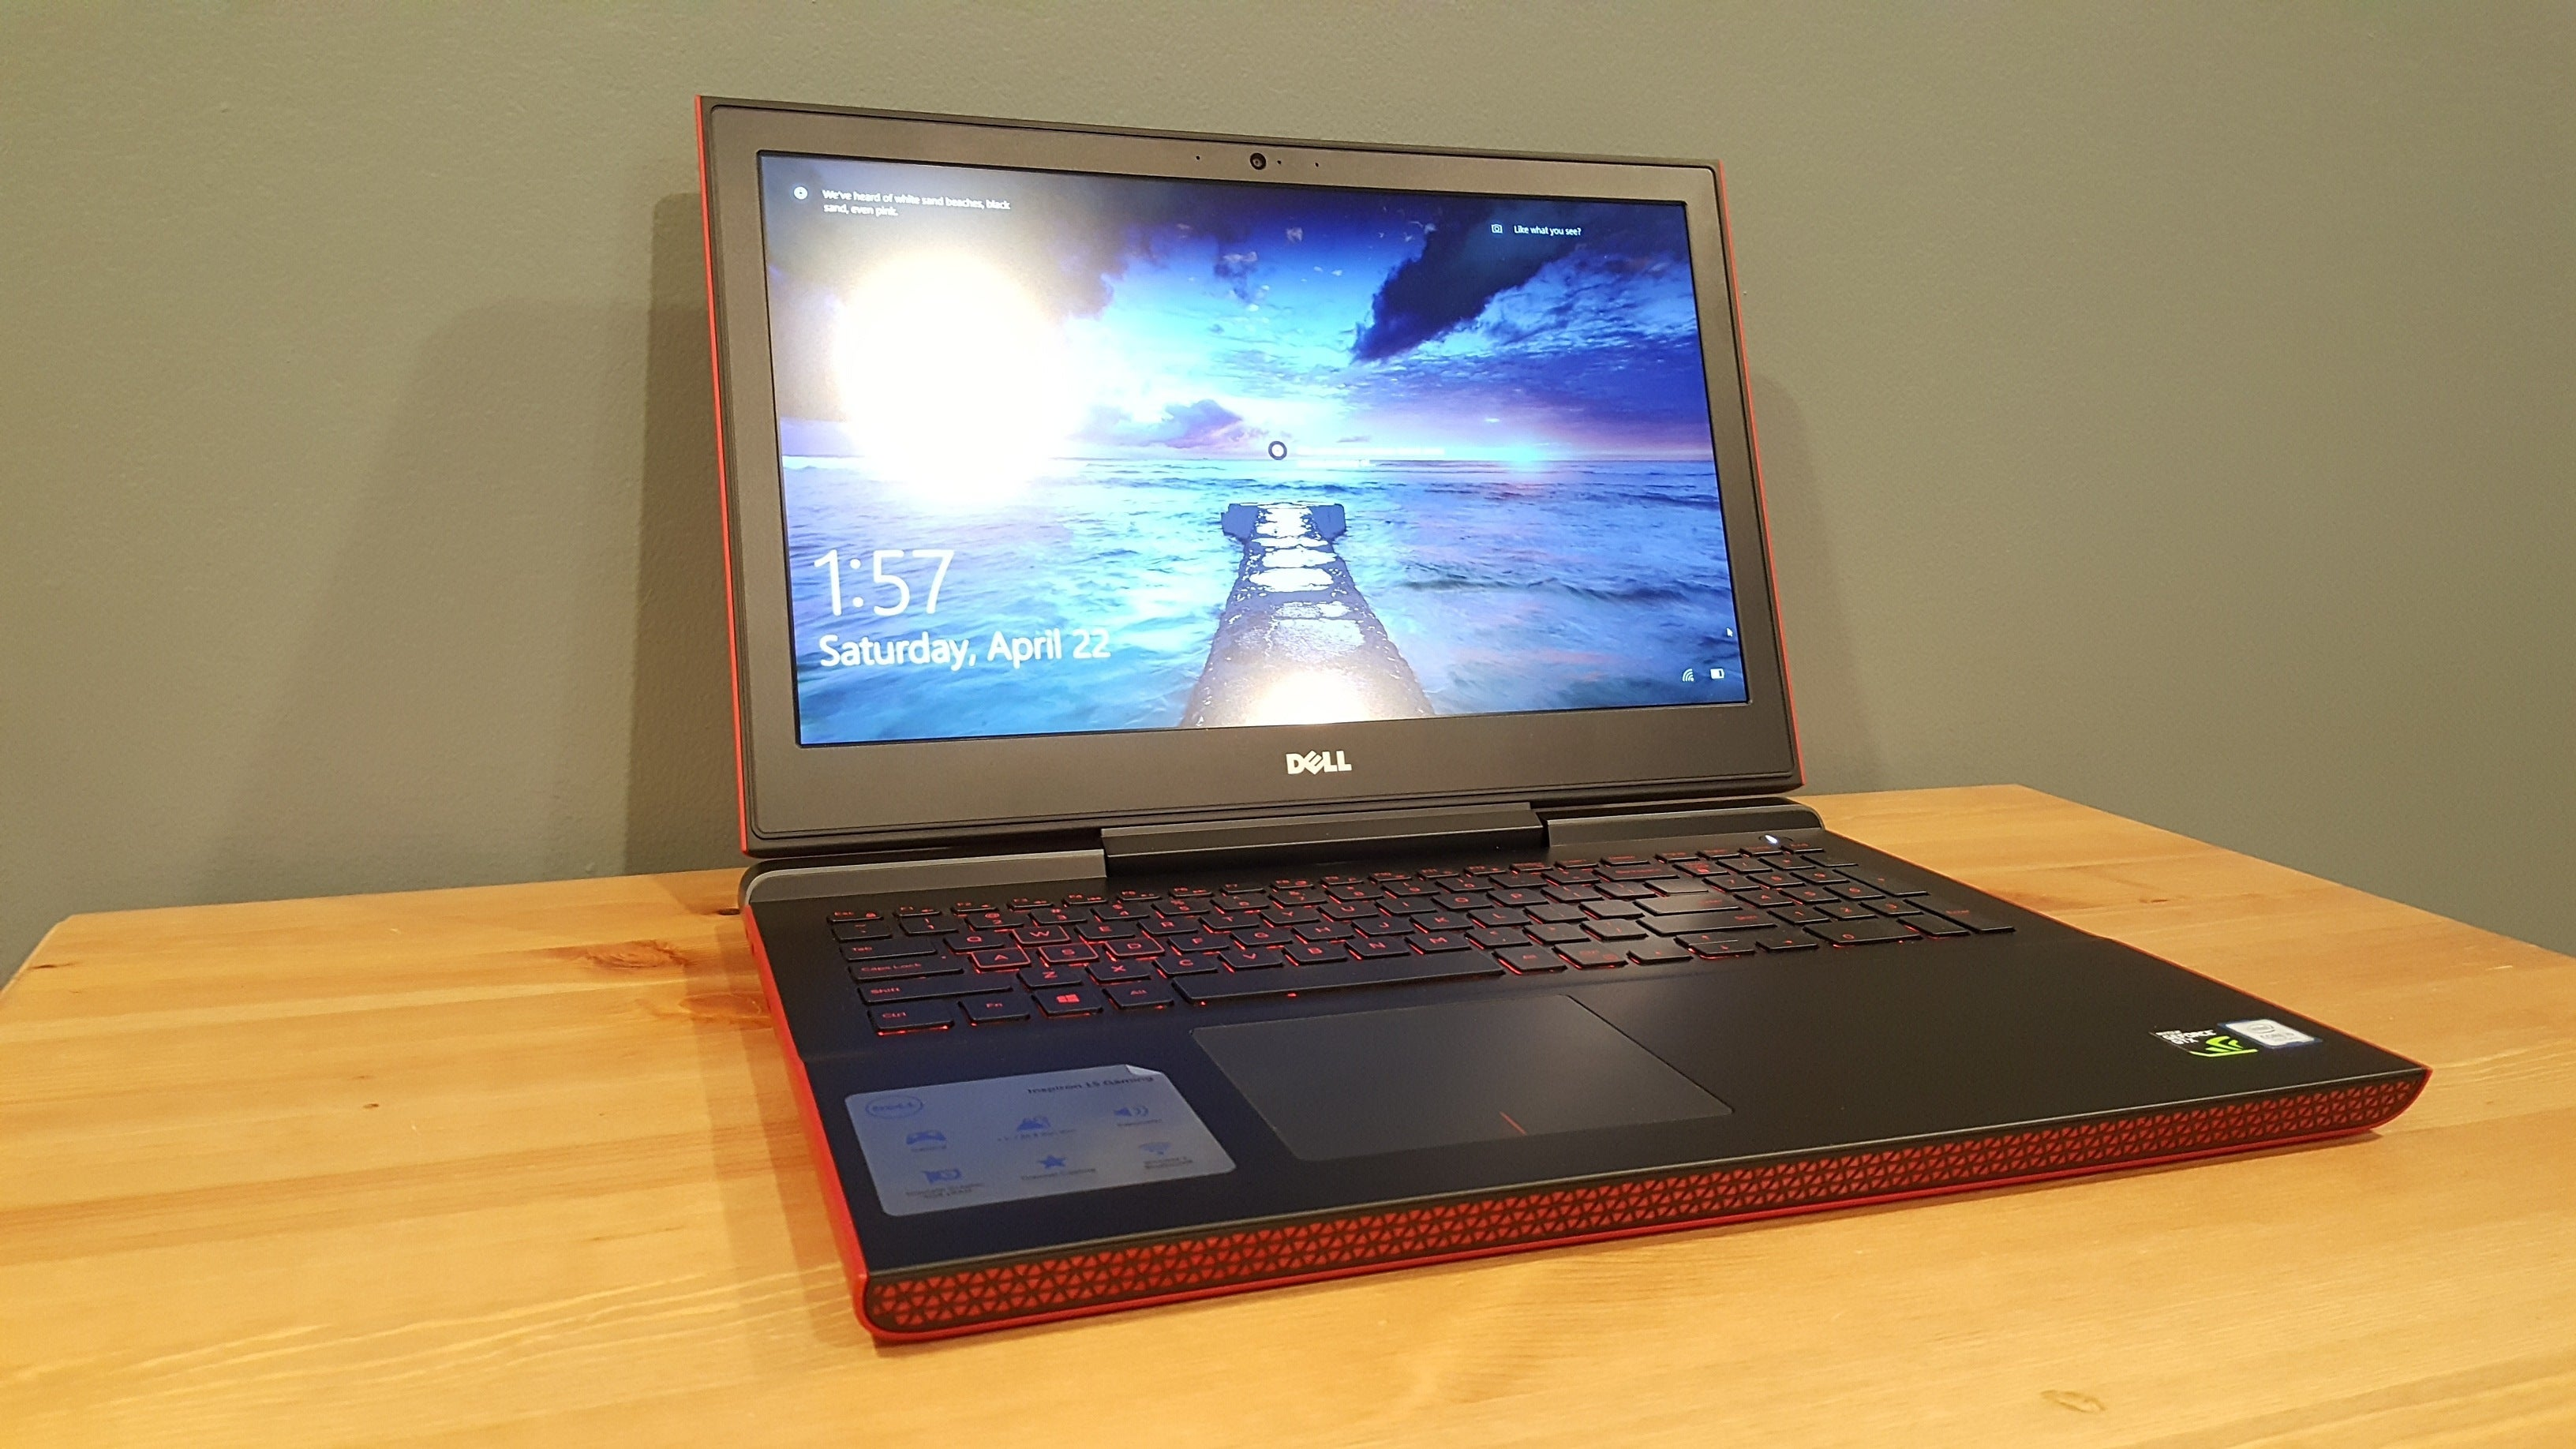 Dell Inspiron 15 7000 review: A gaming laptop at a decidedly